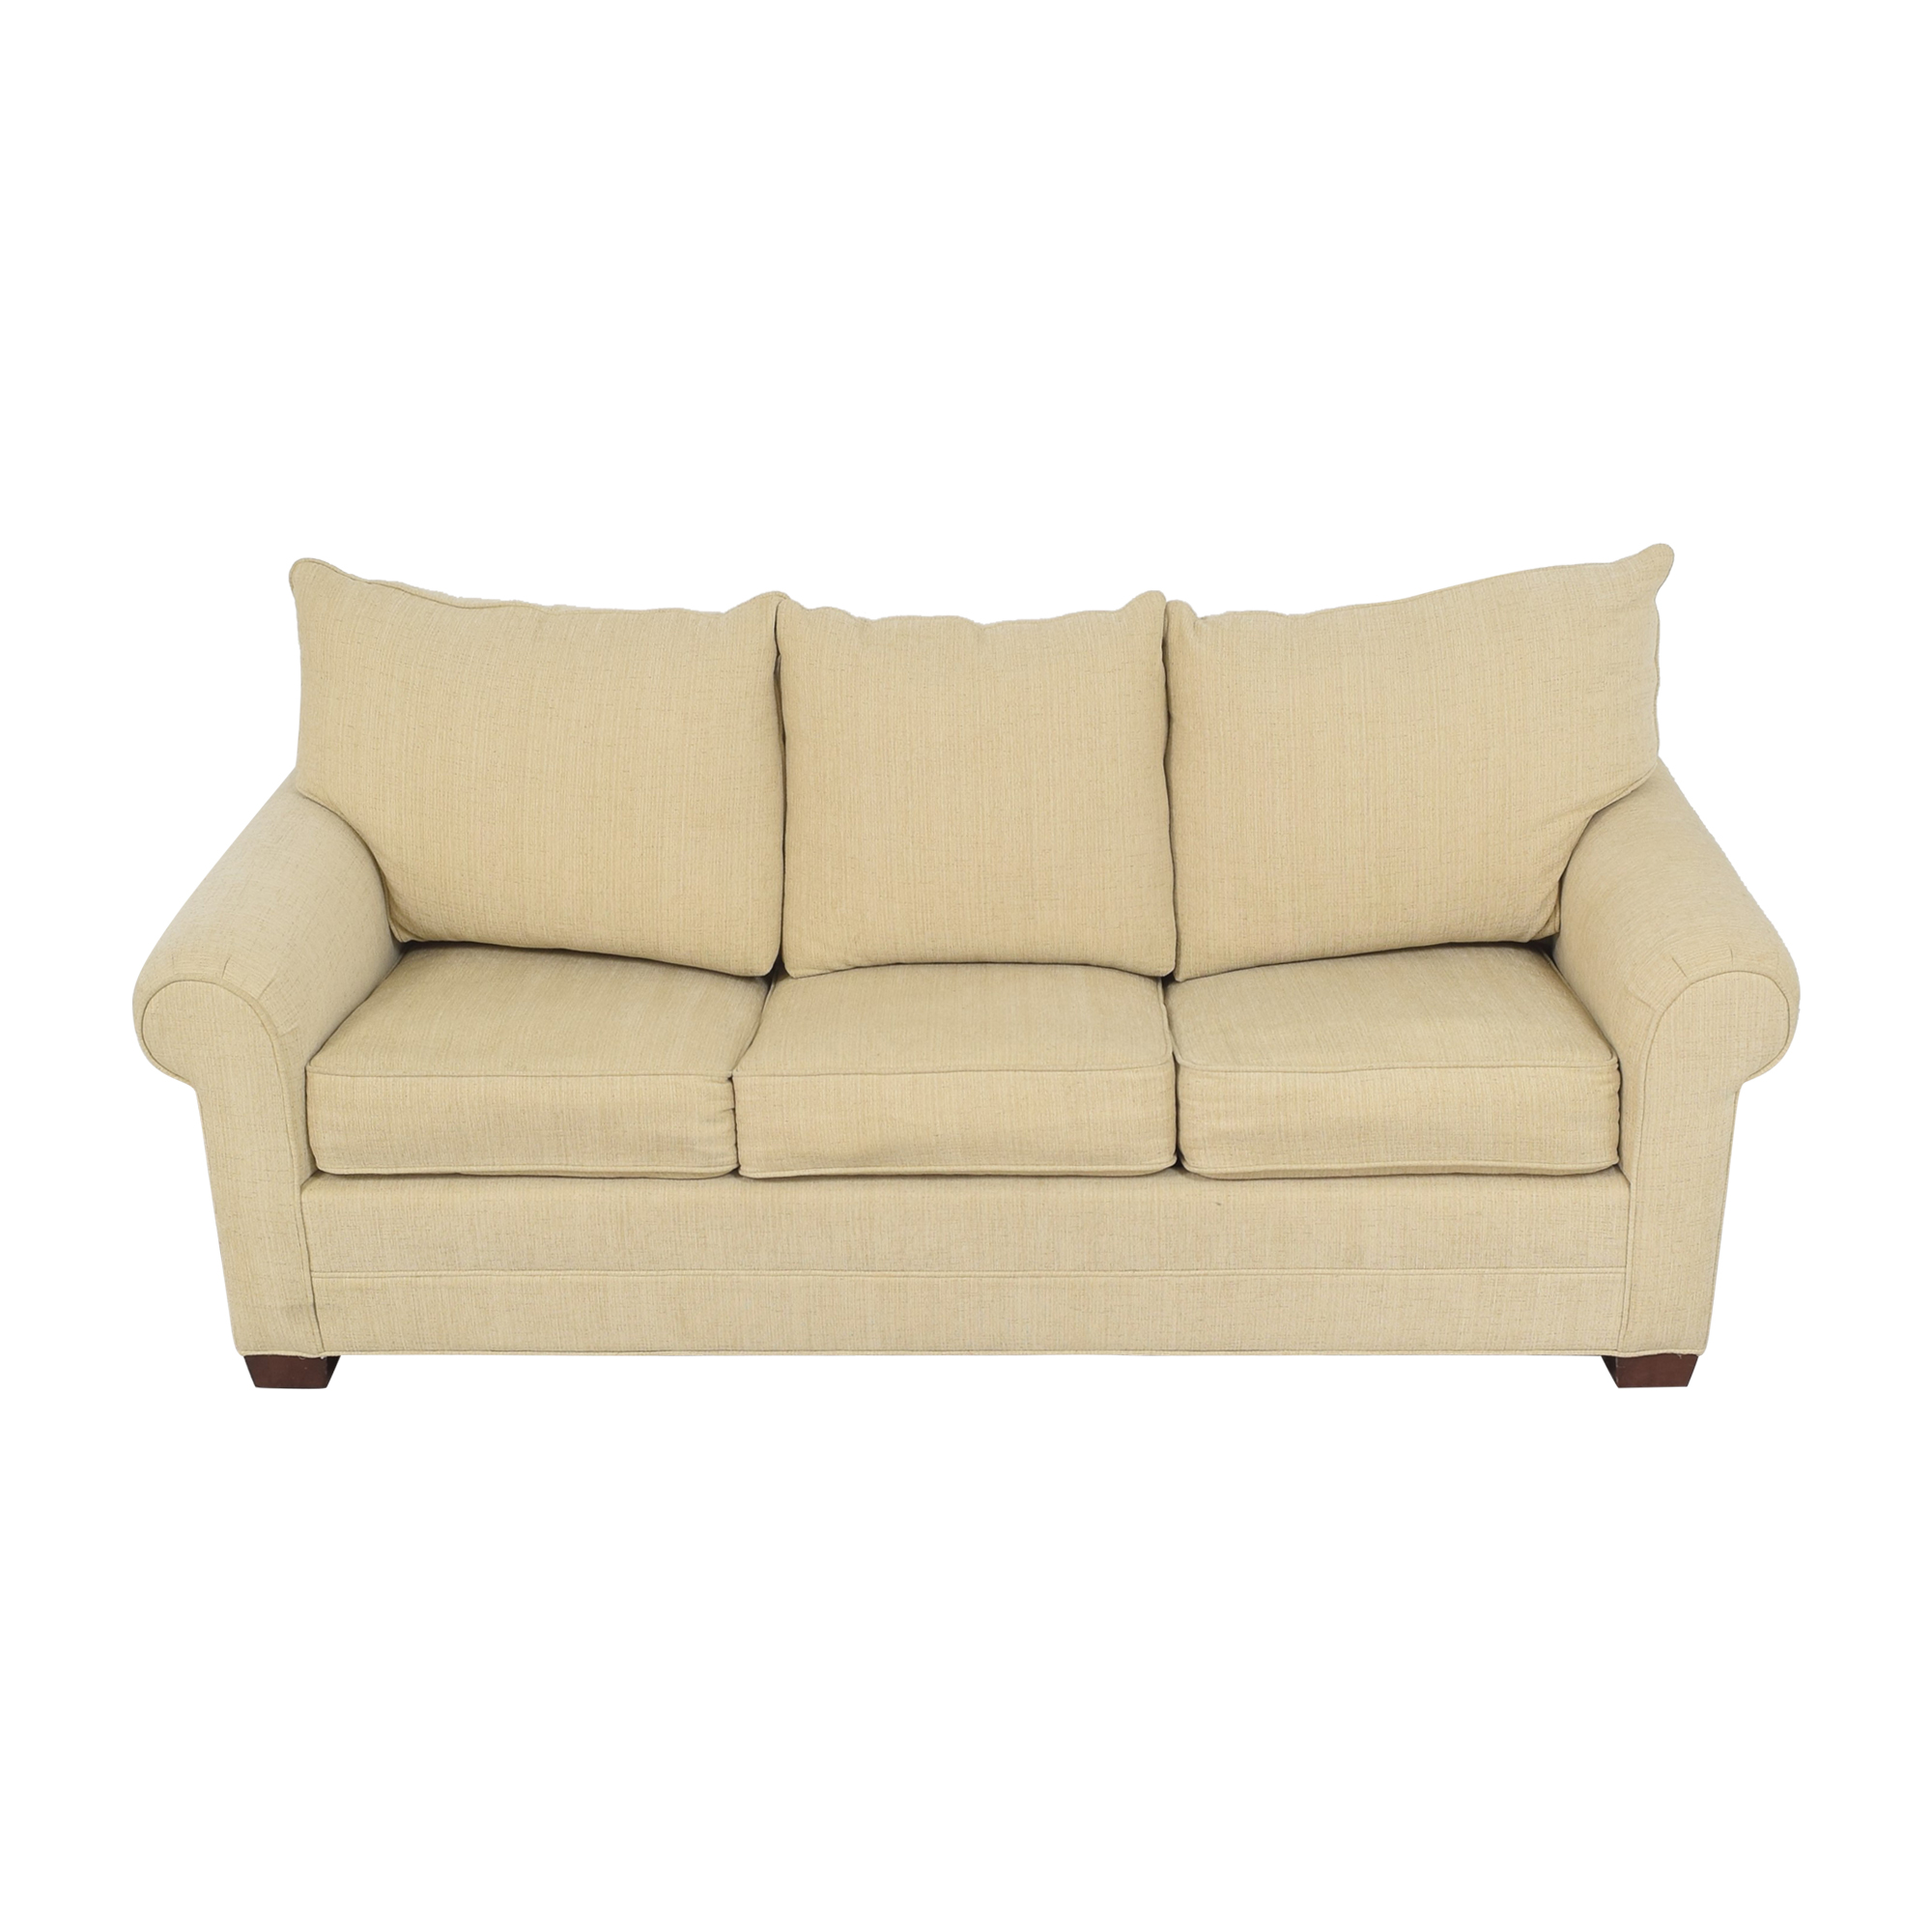 Huntington House Huntington House Roll Arm Sleeper Sofa ma